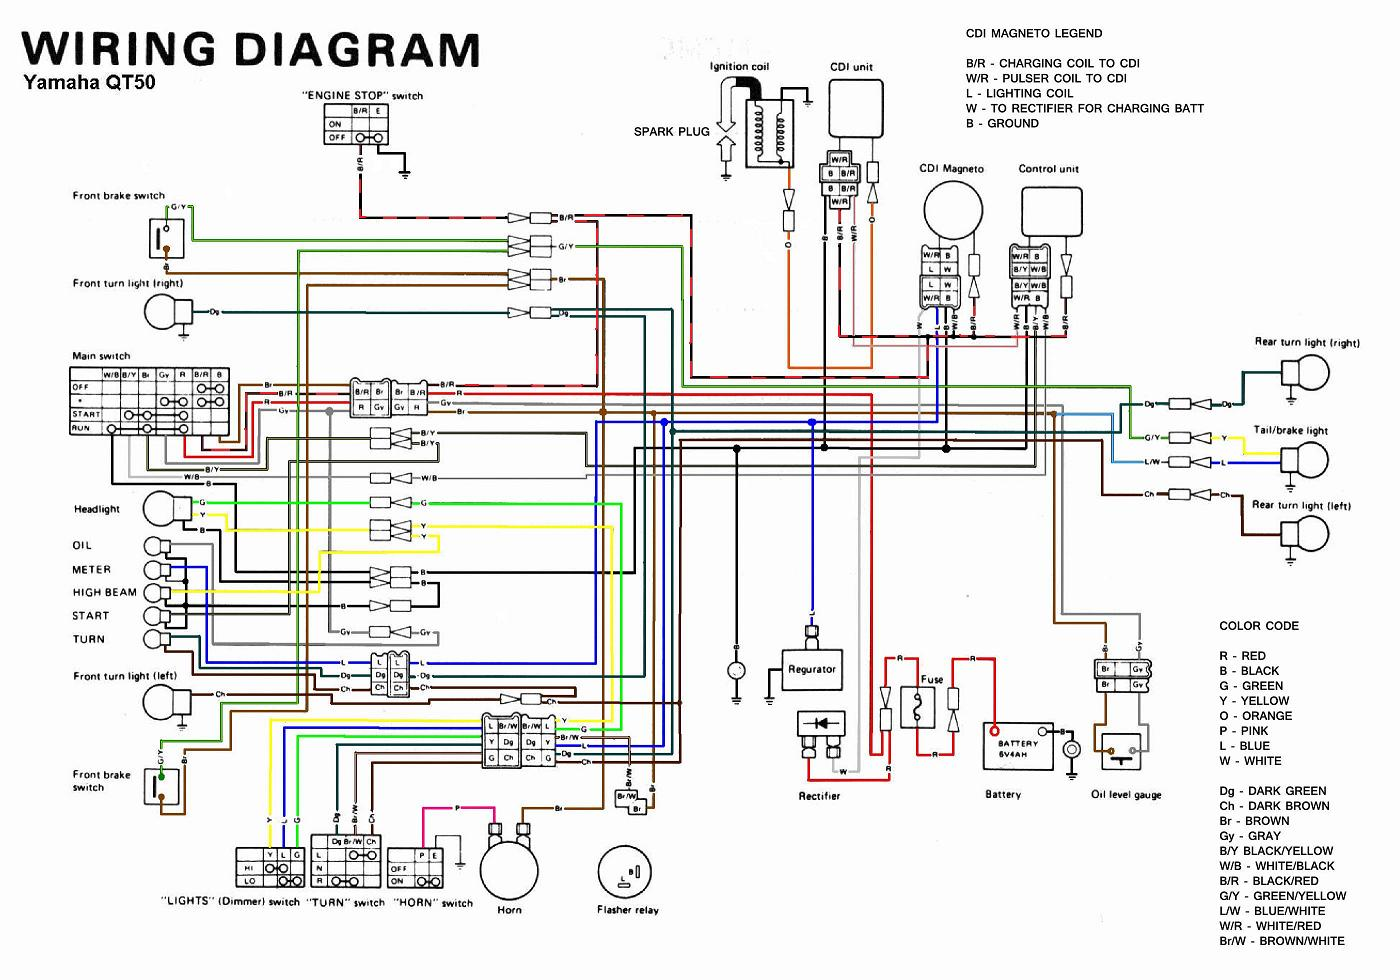 yamaha qt50 wiring diagram yamaha qt50 luvin and other nopeds rh qt50 net  yamaha blaster wiring harness diagram yamaha 10 pin wiring harness diagram